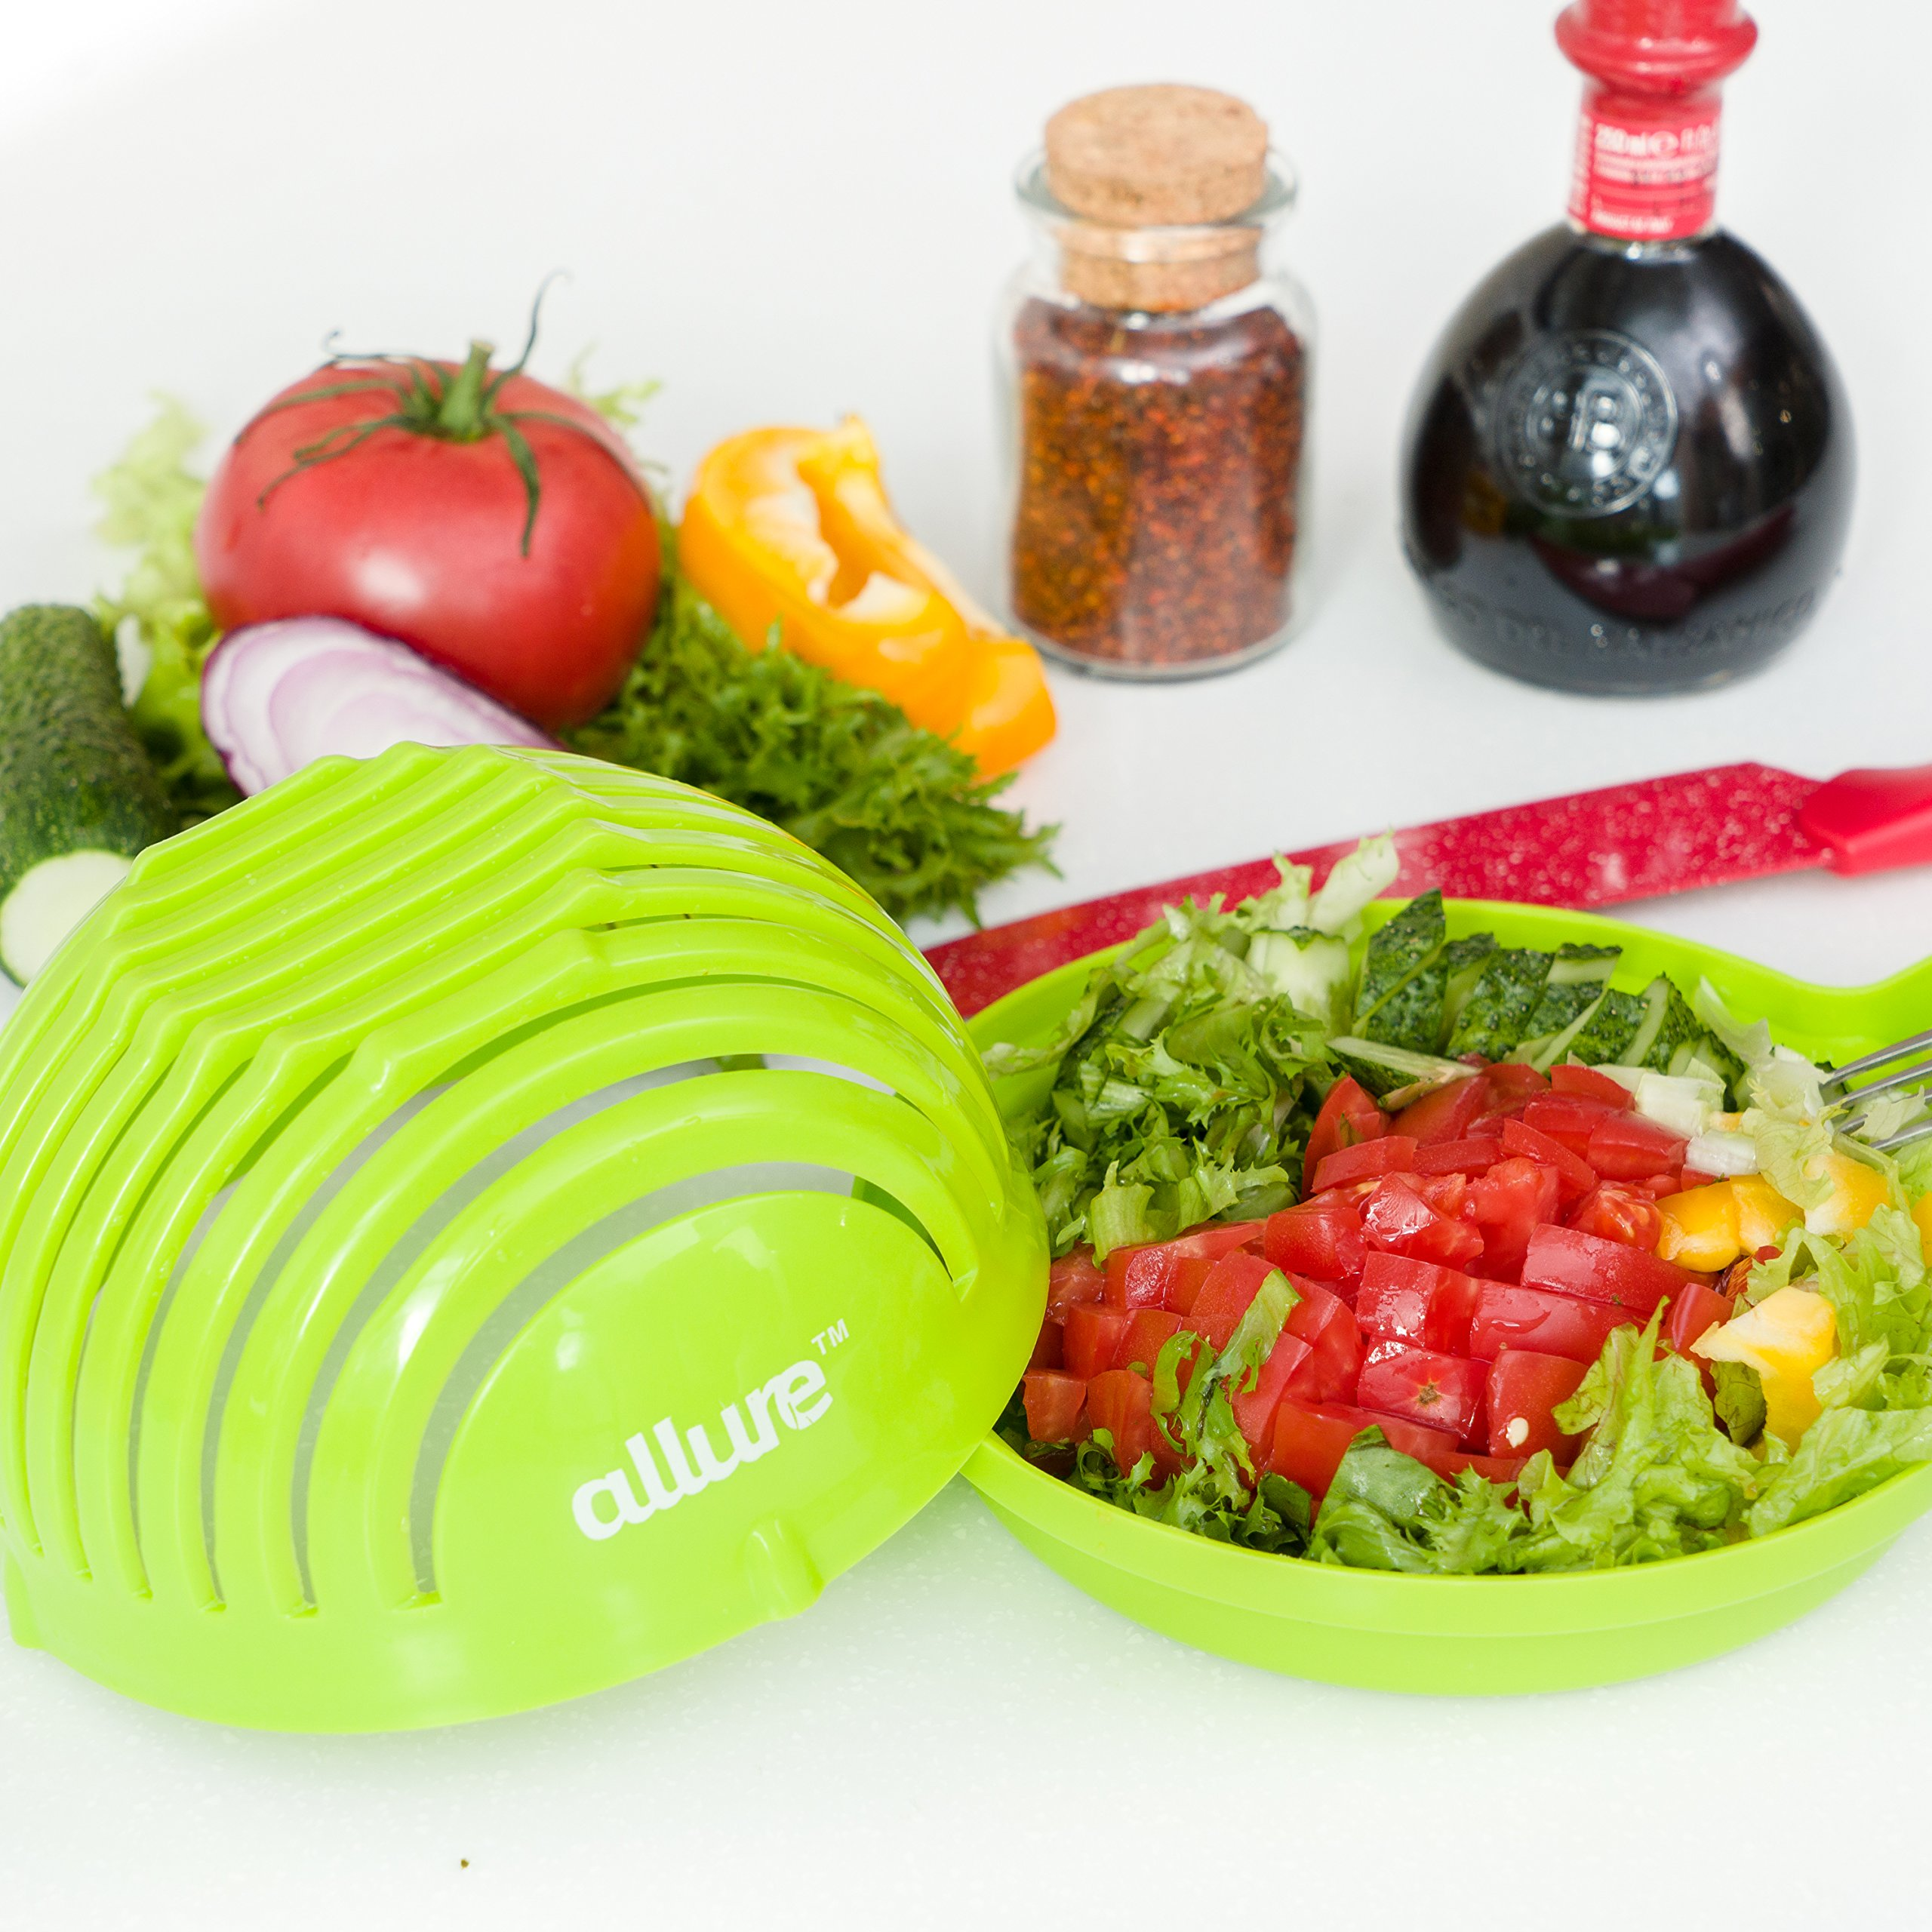 Salad Cutter Bowl Slicer w/Cutting Board| FASTEST FAMILY SIZE Vegetable, Fruit, Onion Chopper